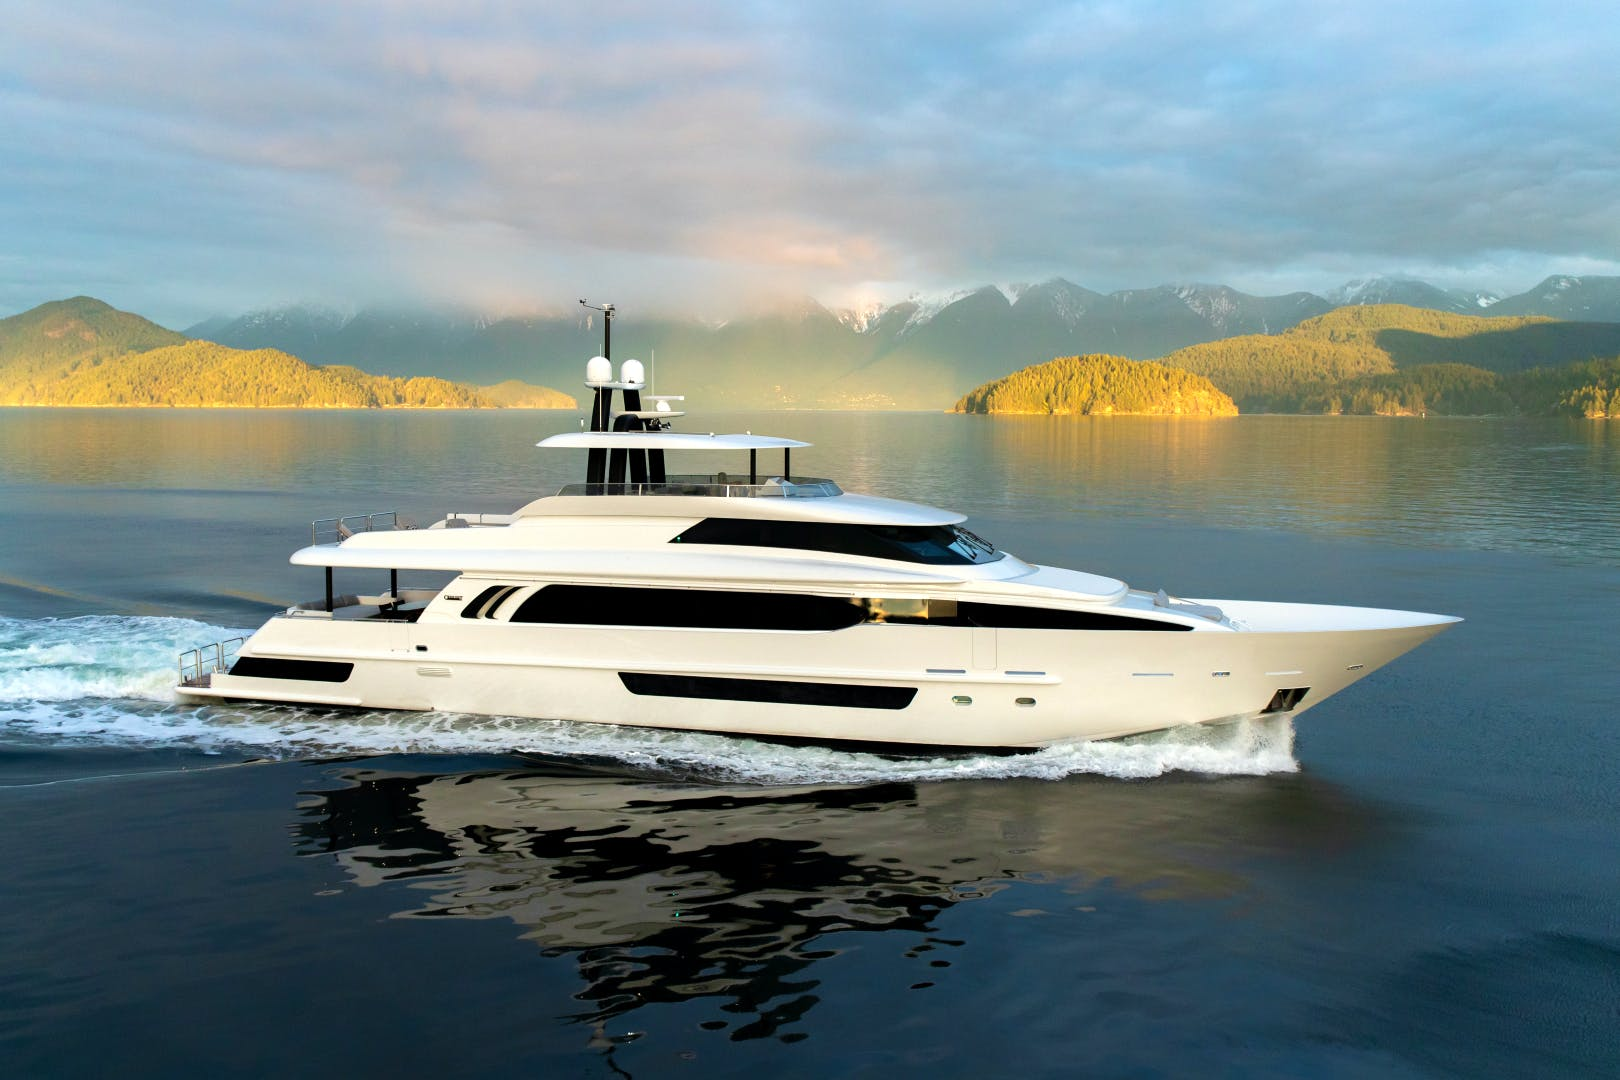 CRESCENt 117 Yacht for sale Profile